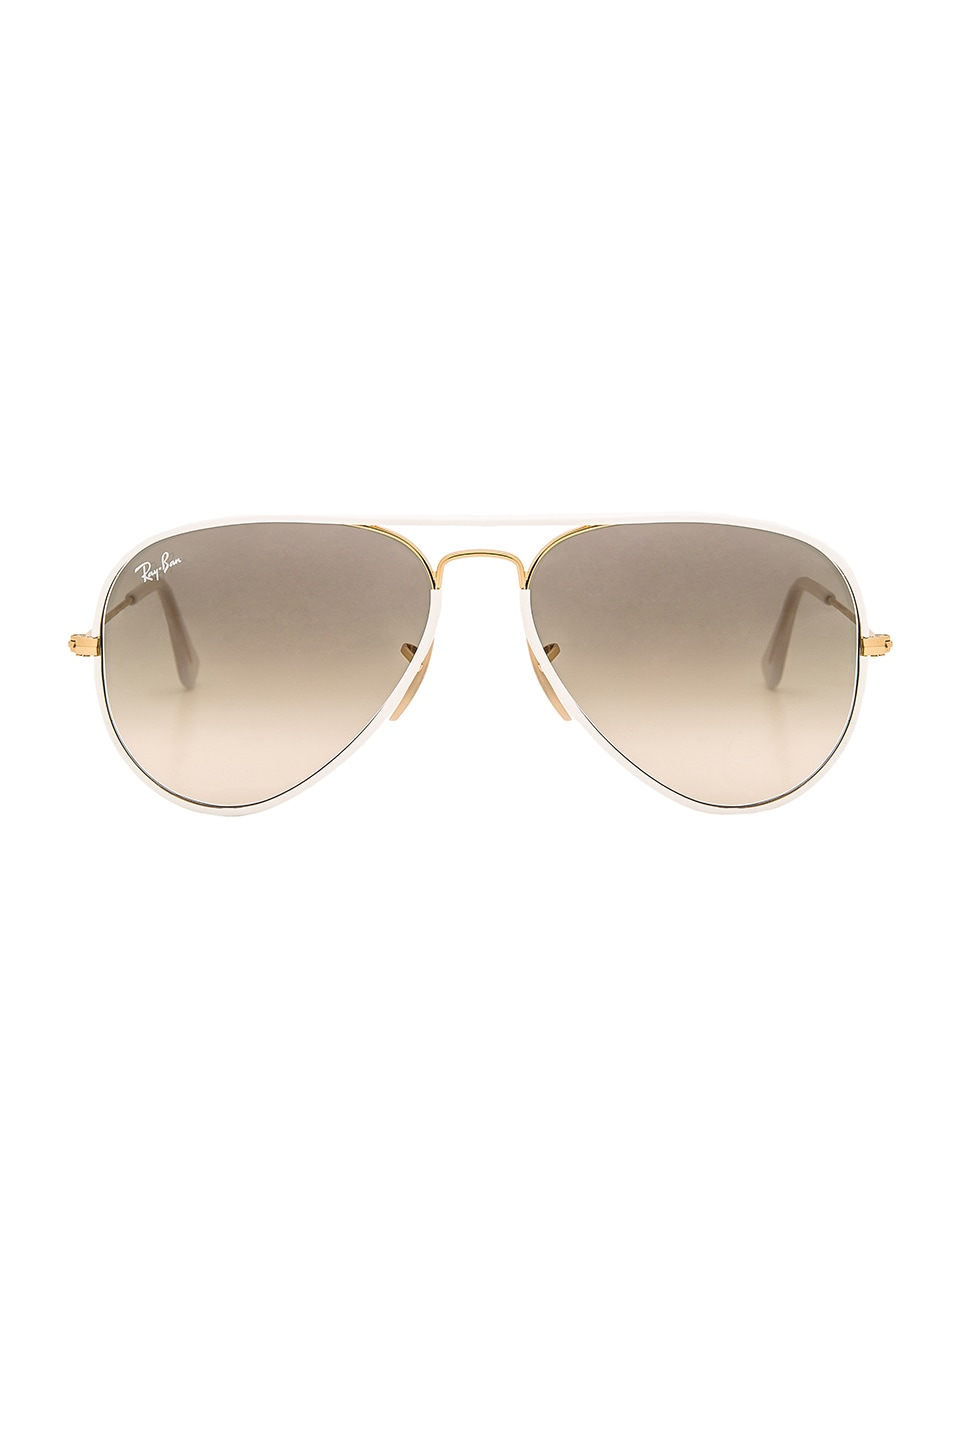 Ray-Ban Aviator Full Color in White & Gold & Light Grey Gradient